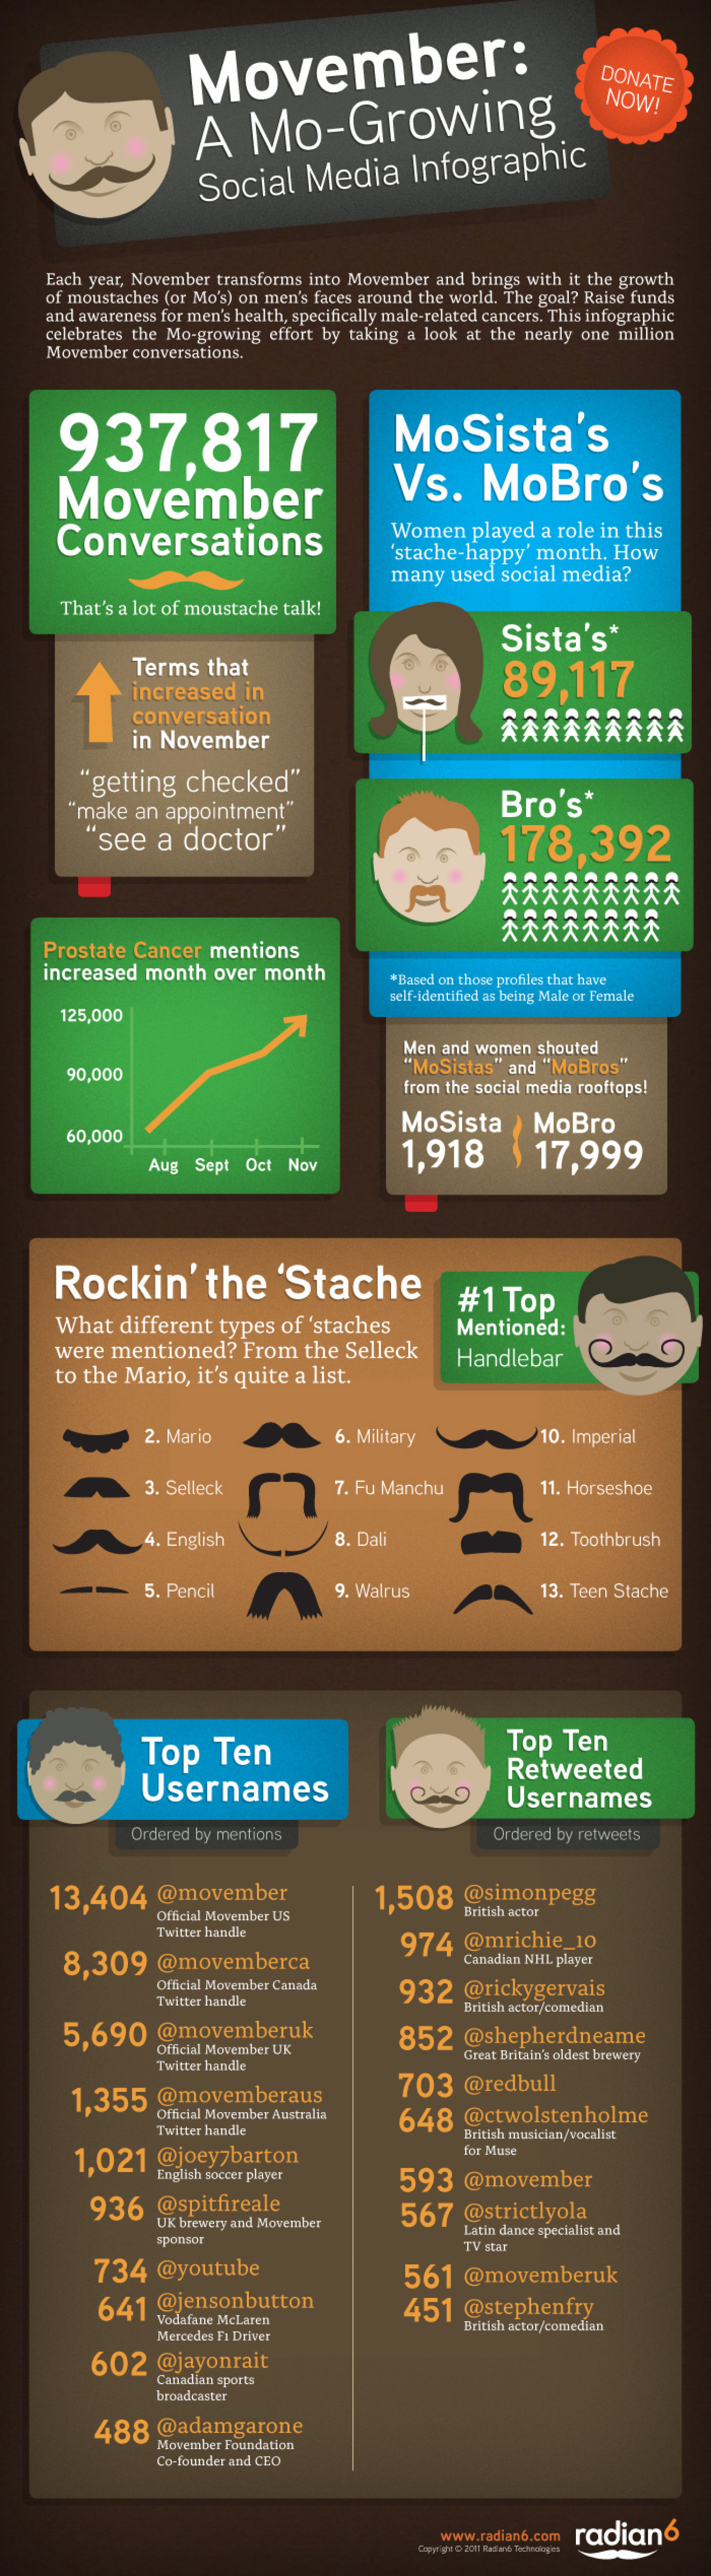 Movember: A Mo-Growing Social Media Trend Infographic